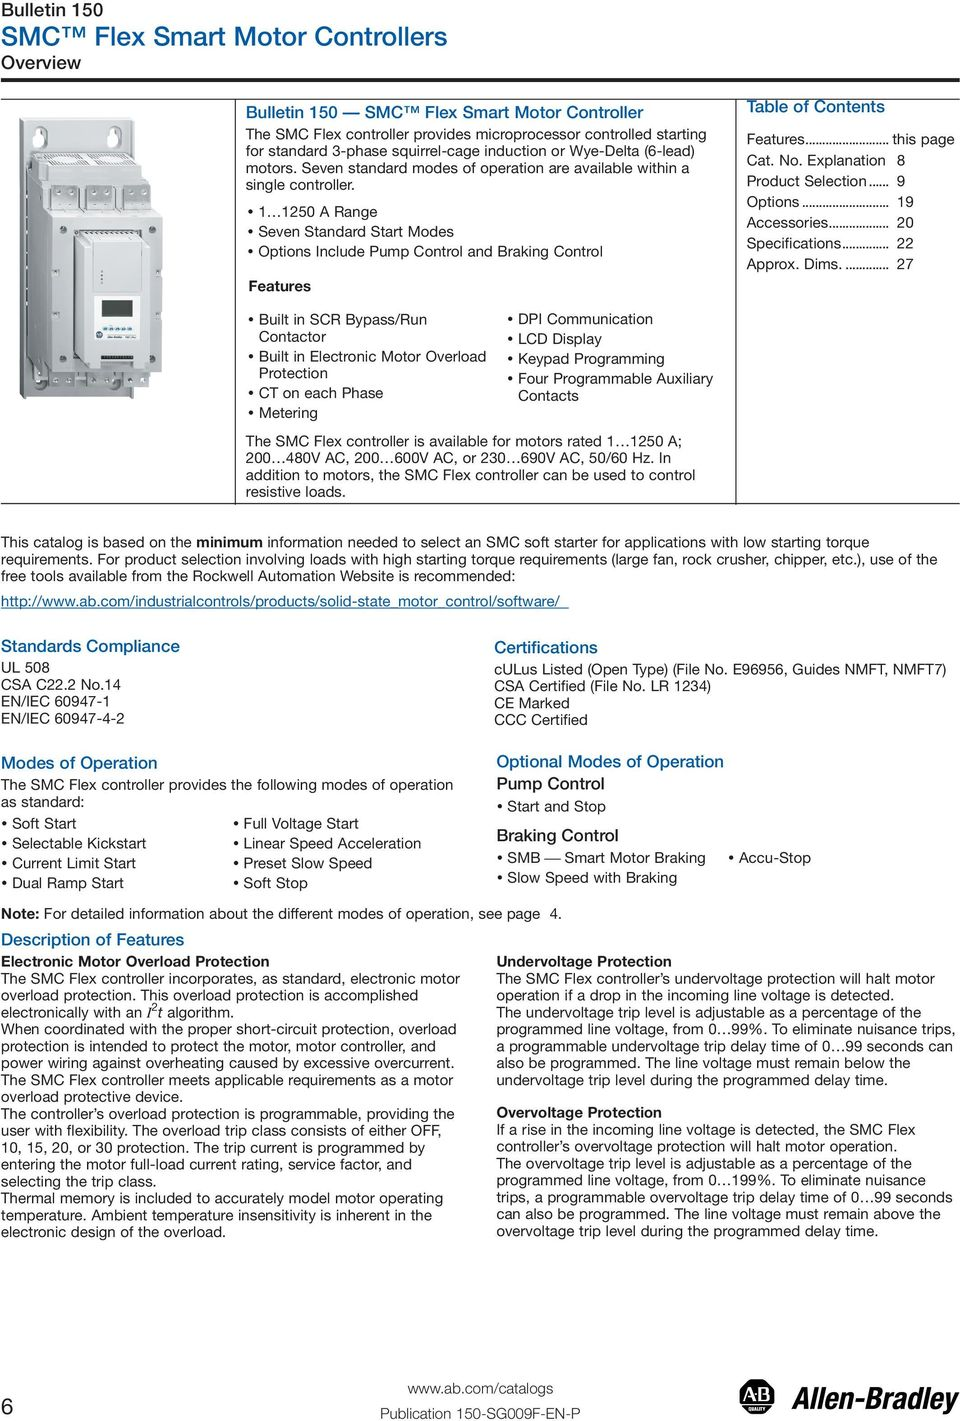 1 1250 A Range Seven Standard Start Modes Options Include Pump Control and Braking Control Features Table of Contents Features... this page Explanation 8 Product Selection... 9 Options.